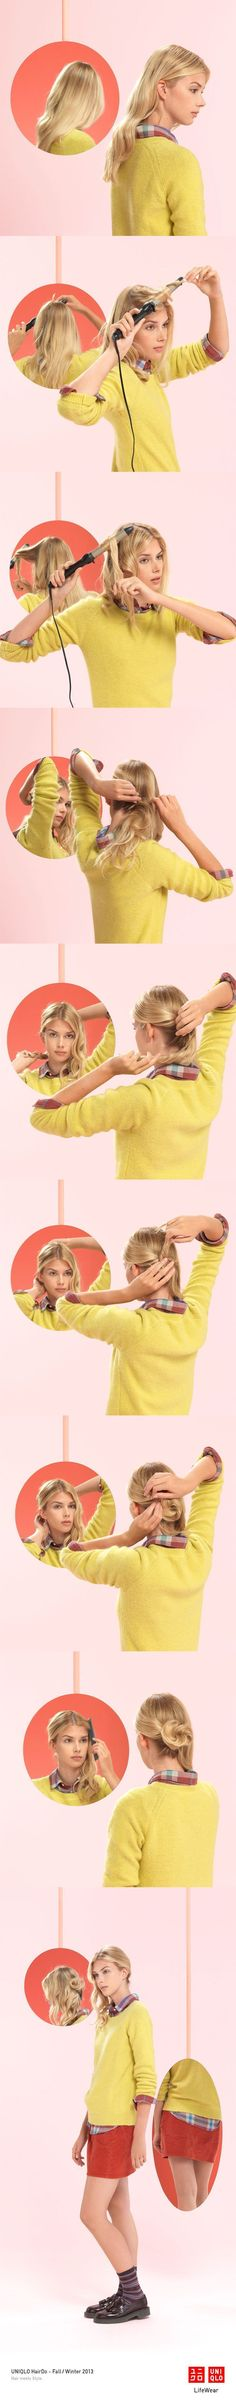 """""""THE ROLL AND WAVE"""" : Simple and fun, this style looks great on the go. LooseCurls Click the image for DIY instructions! Grease Hairstyles, Diy Hairstyles, Hairstyle Tutorials, Uniqlo, Great Hair, Hair Dos, Professional Hairstyles, Hair Hacks, Hair Inspiration"""